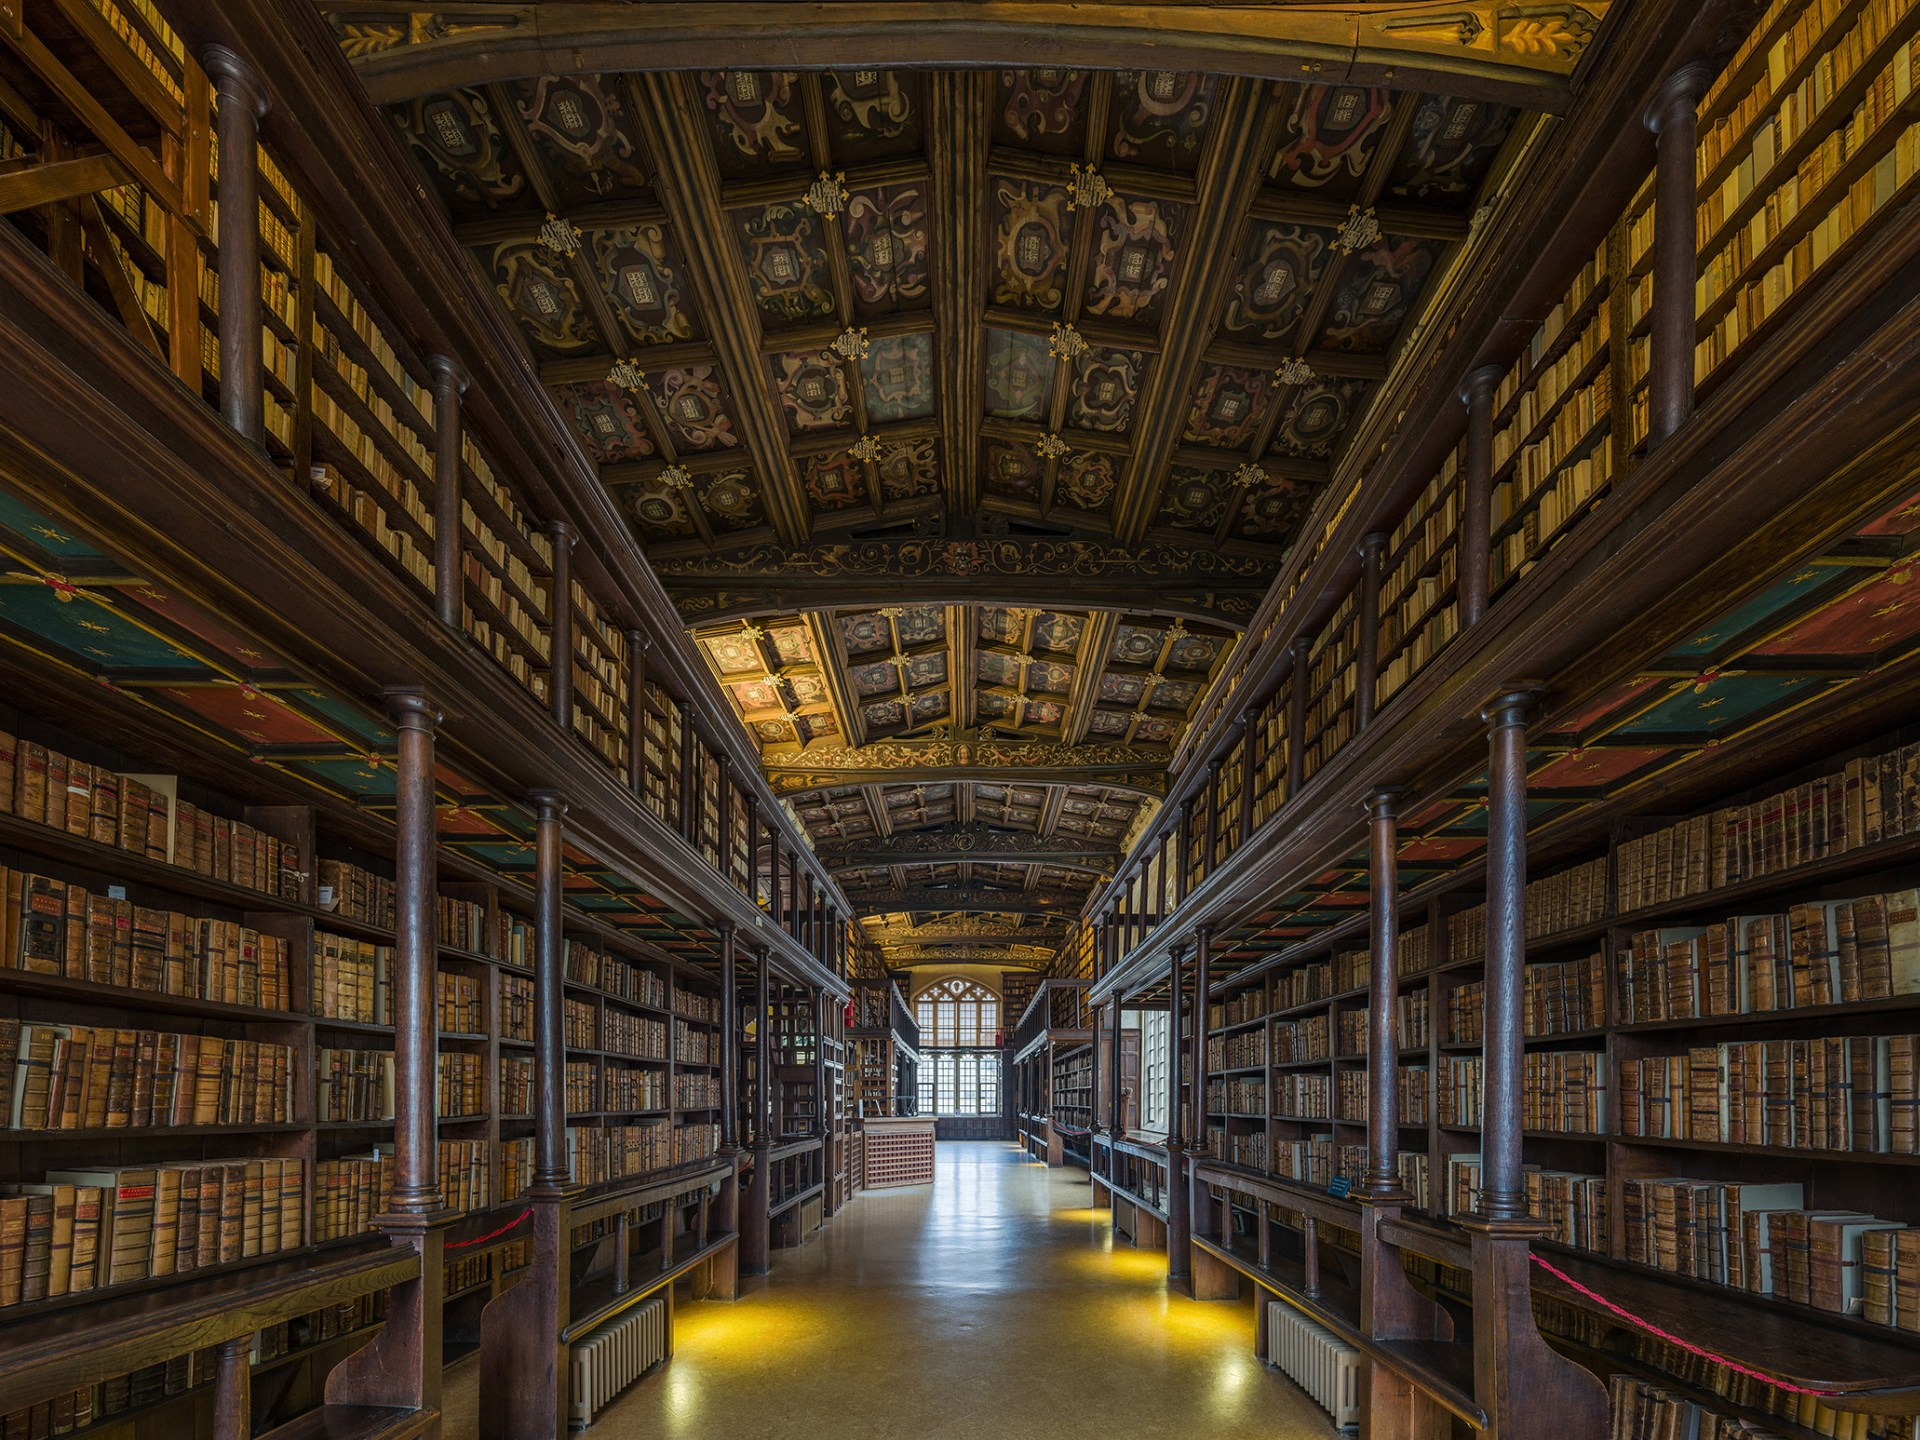 The Unchained Library